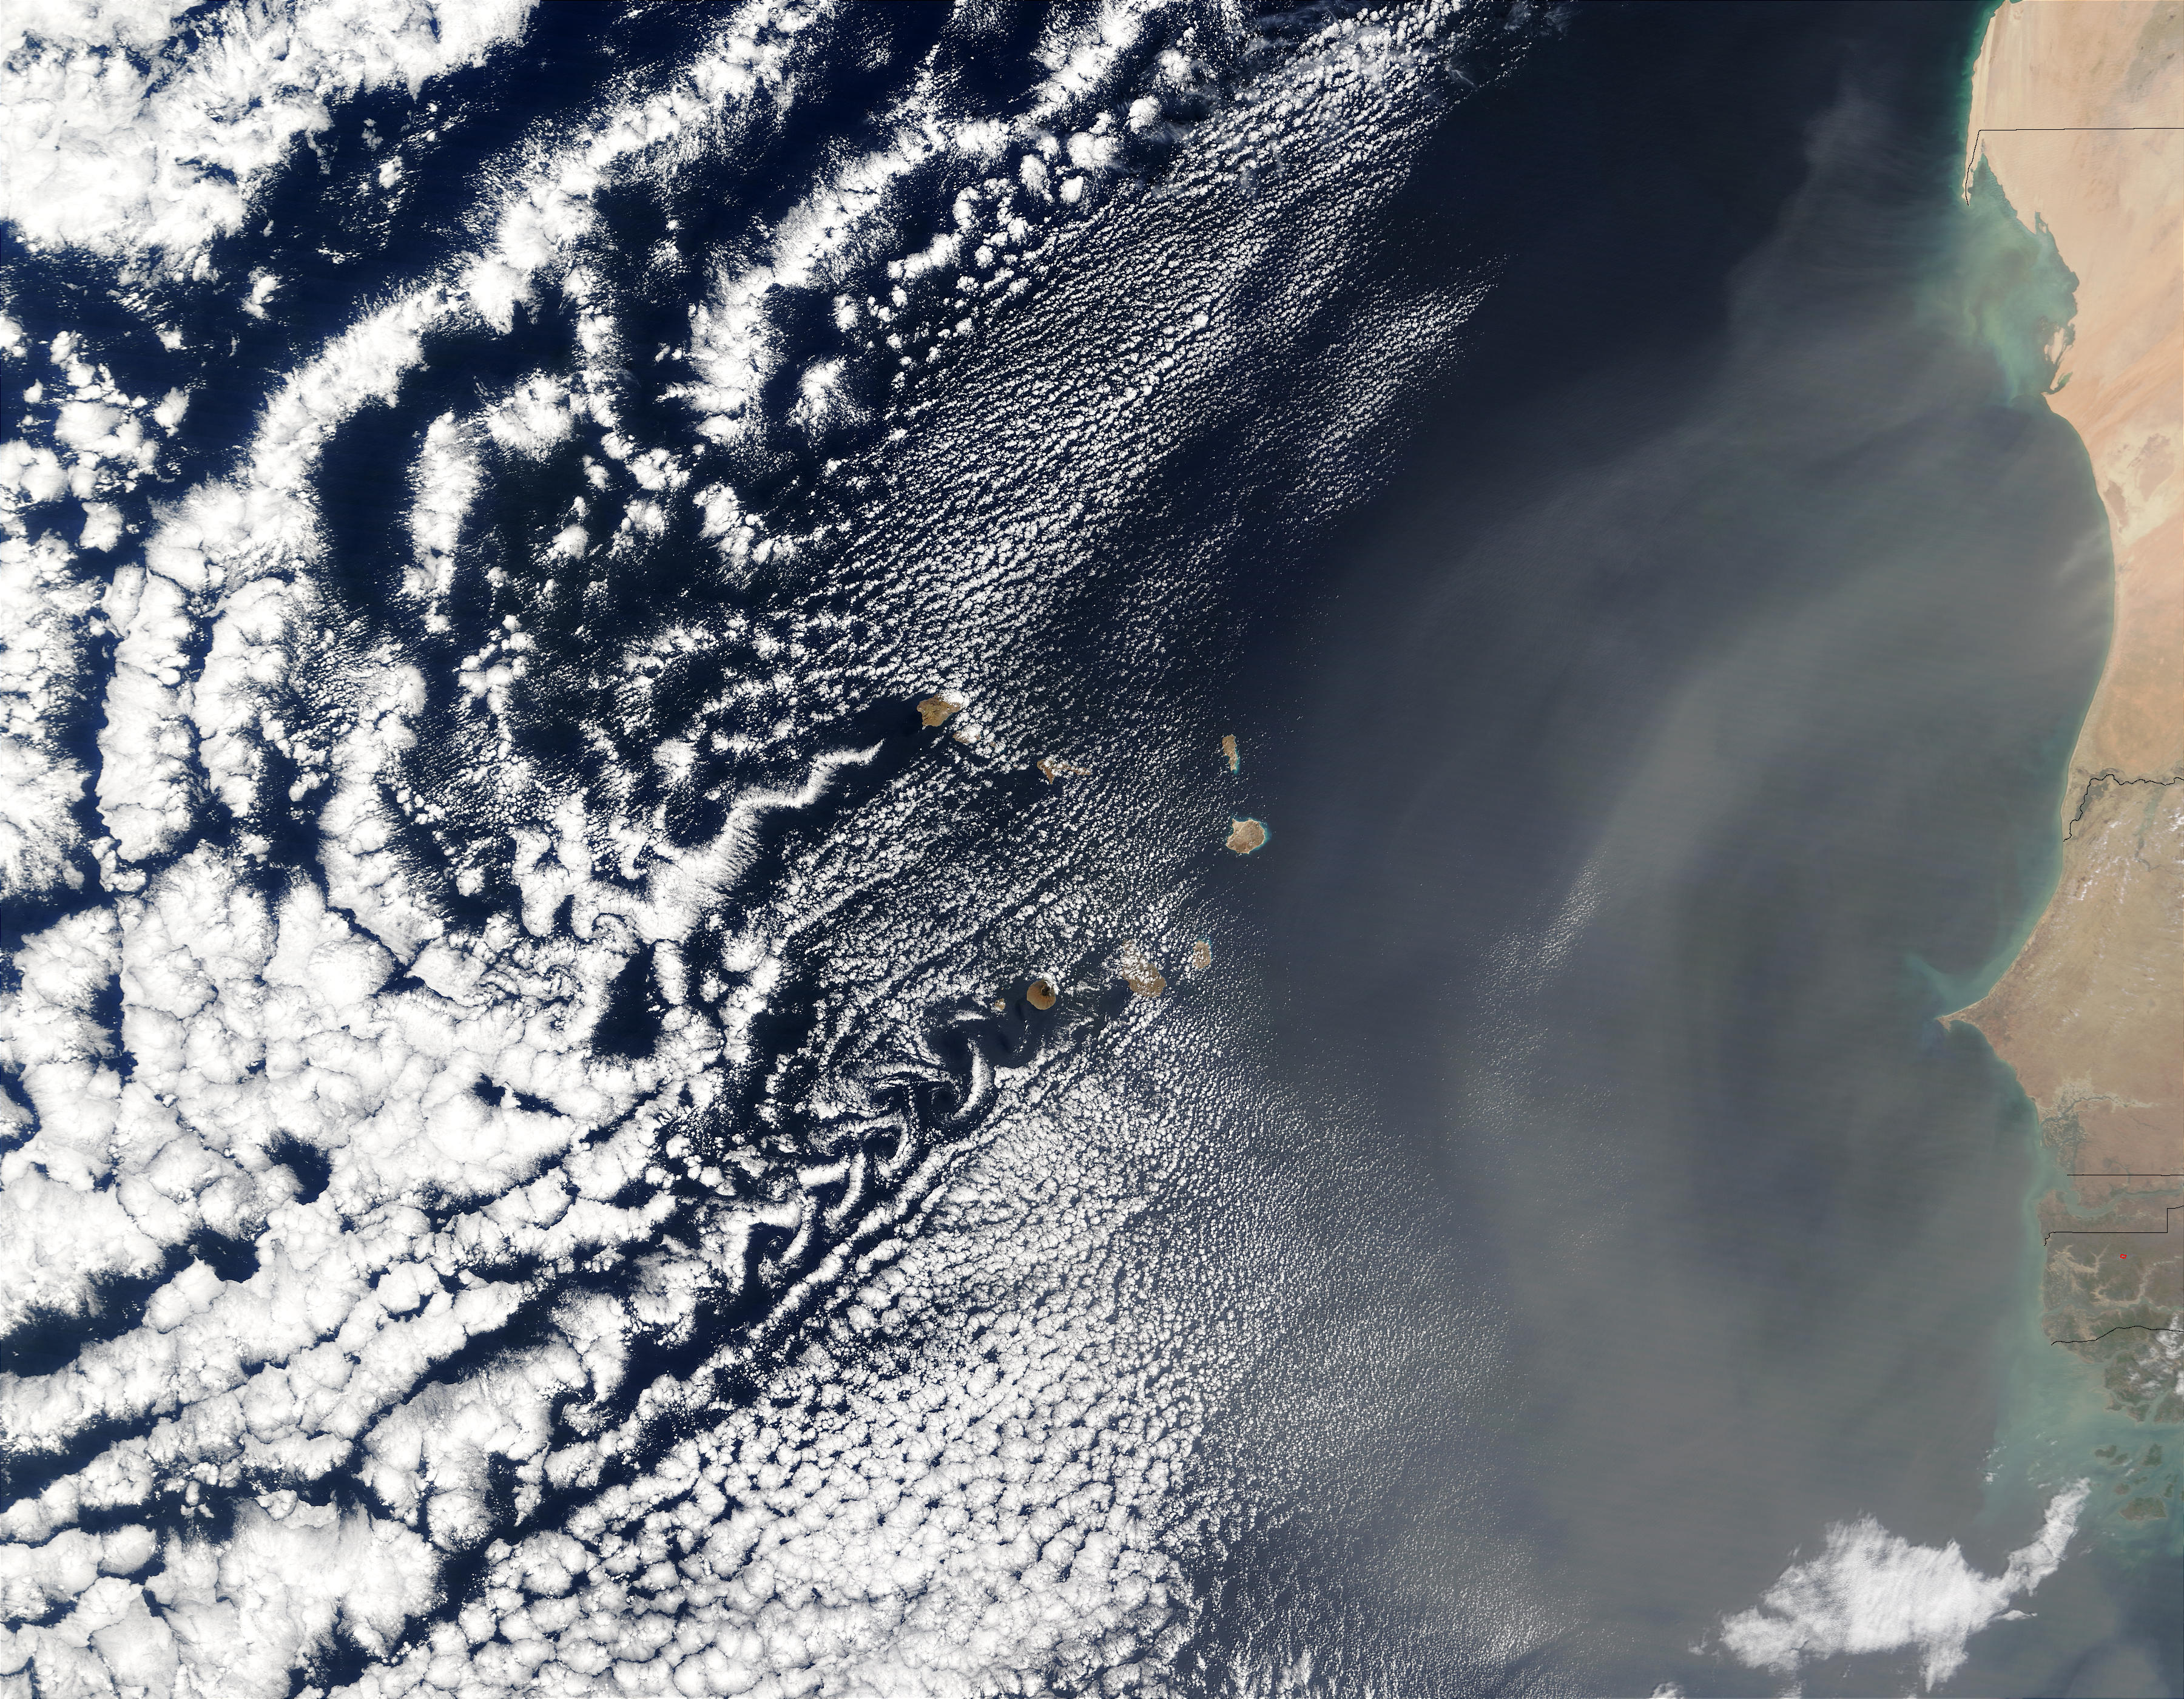 Vortex street and dust off Cape Verde Islands - related image preview